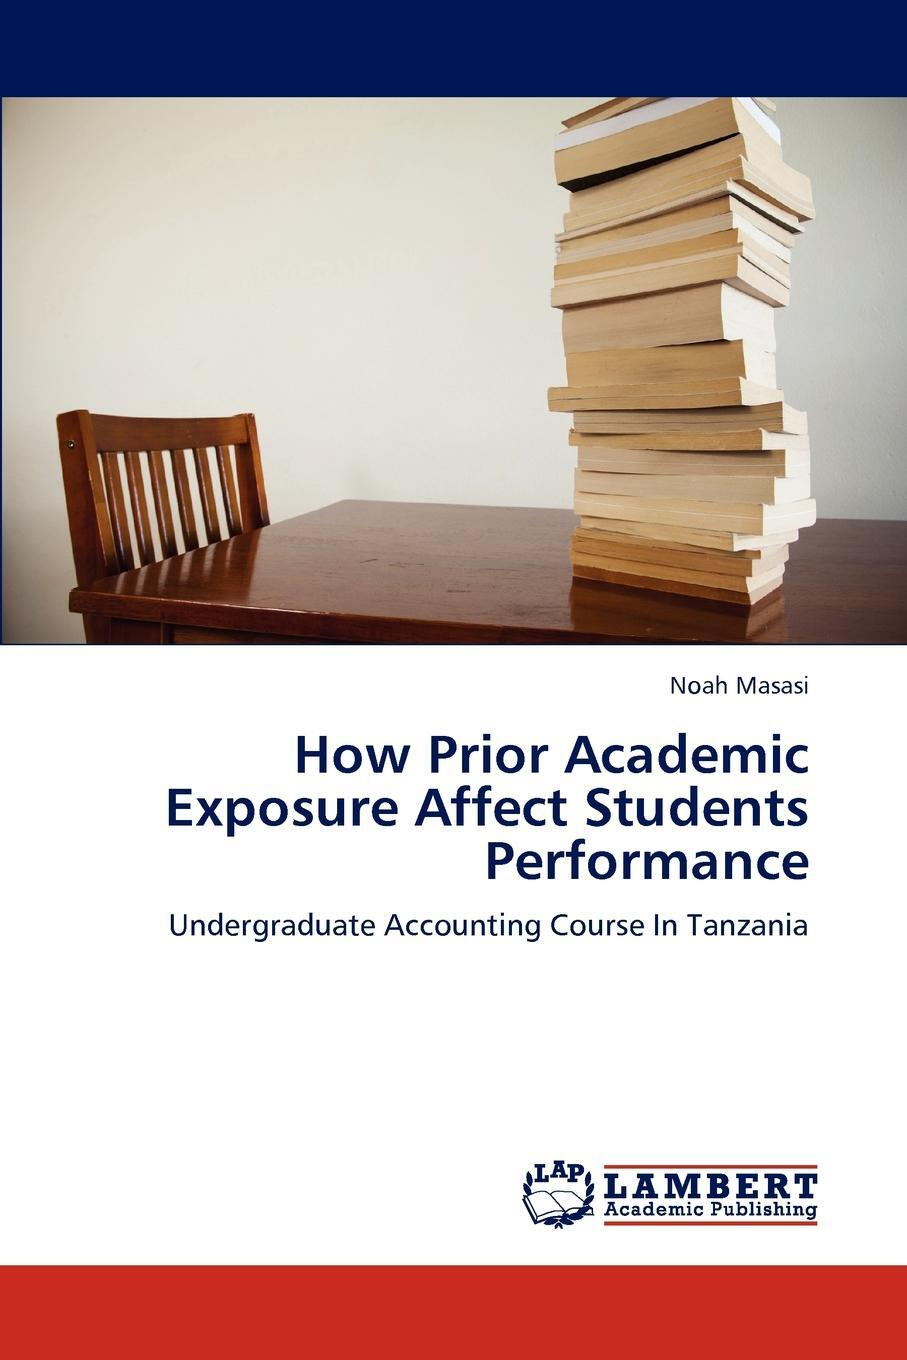 How Prior Academic Exposure Affect Students Performance